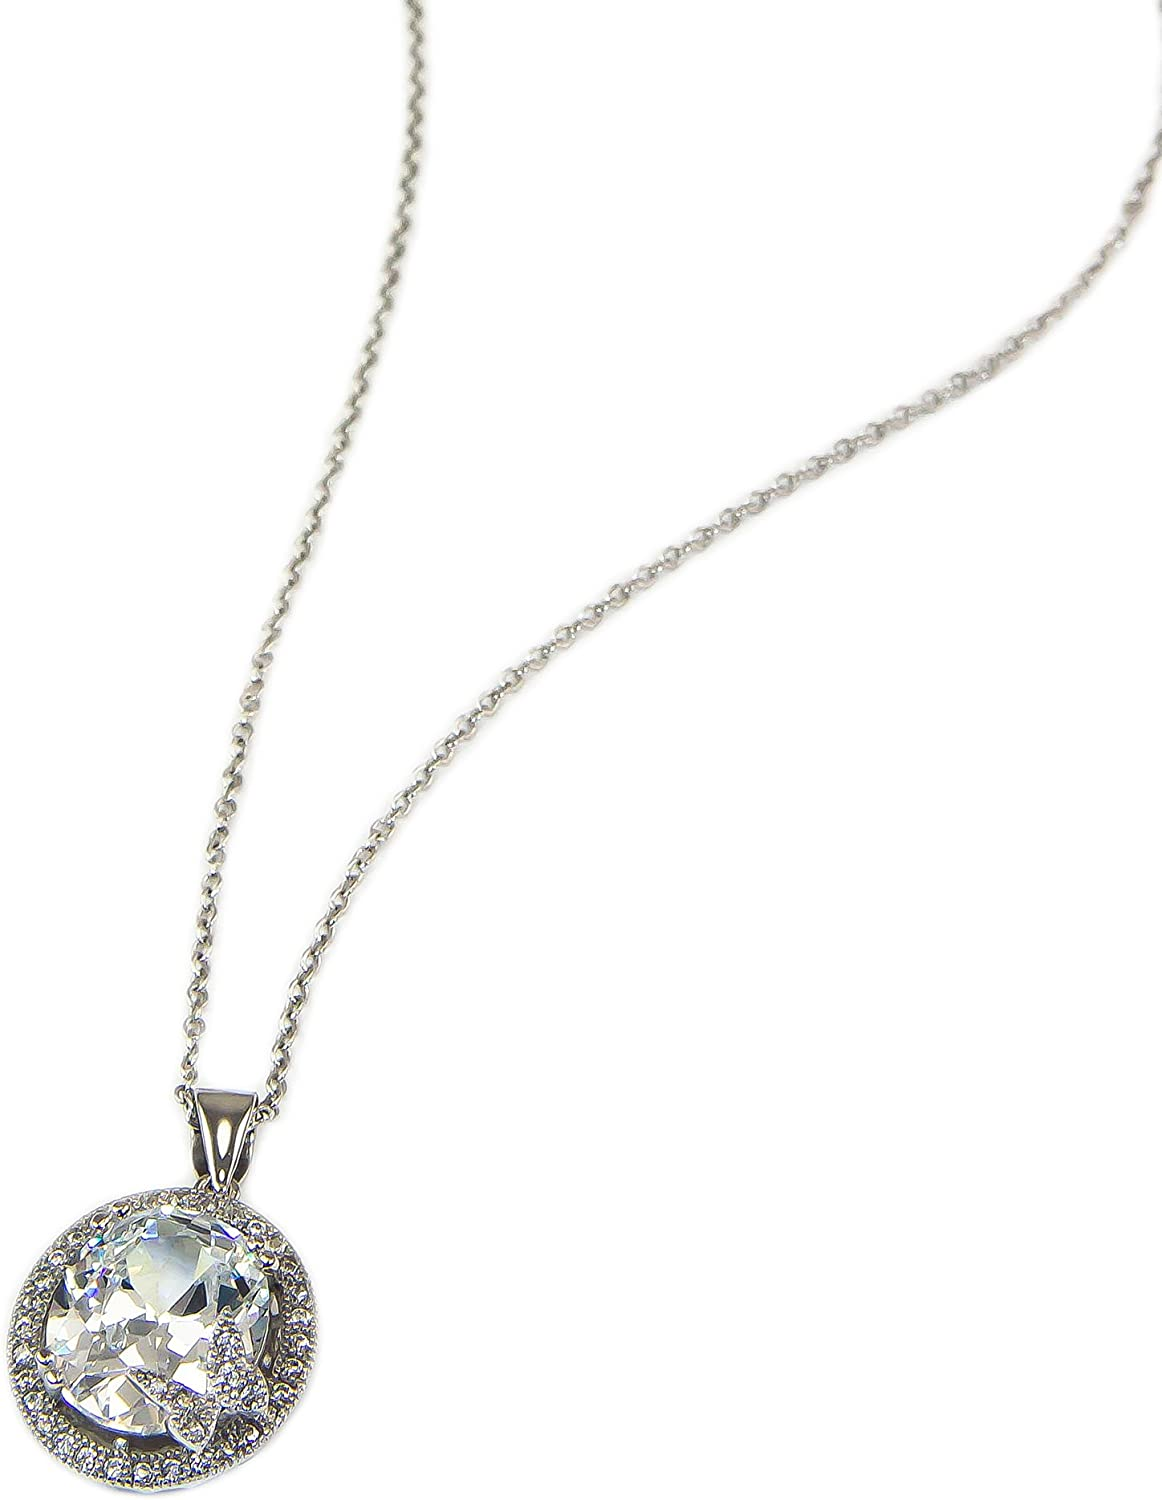 Wostu Hot Selling Evil Eyes Pendant Necklace 925 Sterling Silver Pave Setting